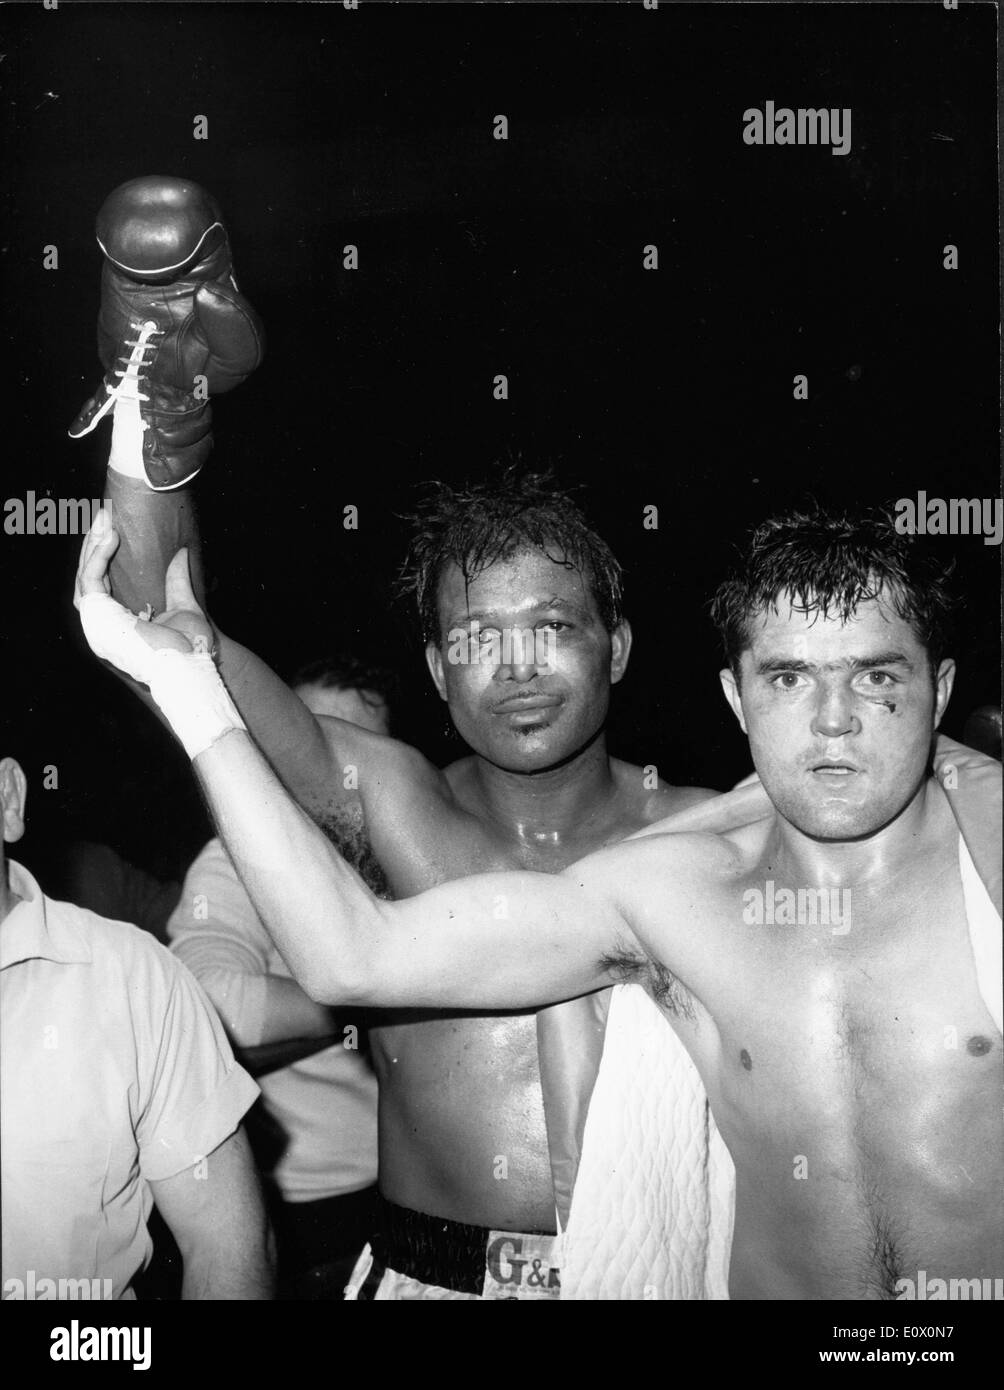 Sugar Ray Robinson with French opponent Yoland Leveque after beating him - Stock Image